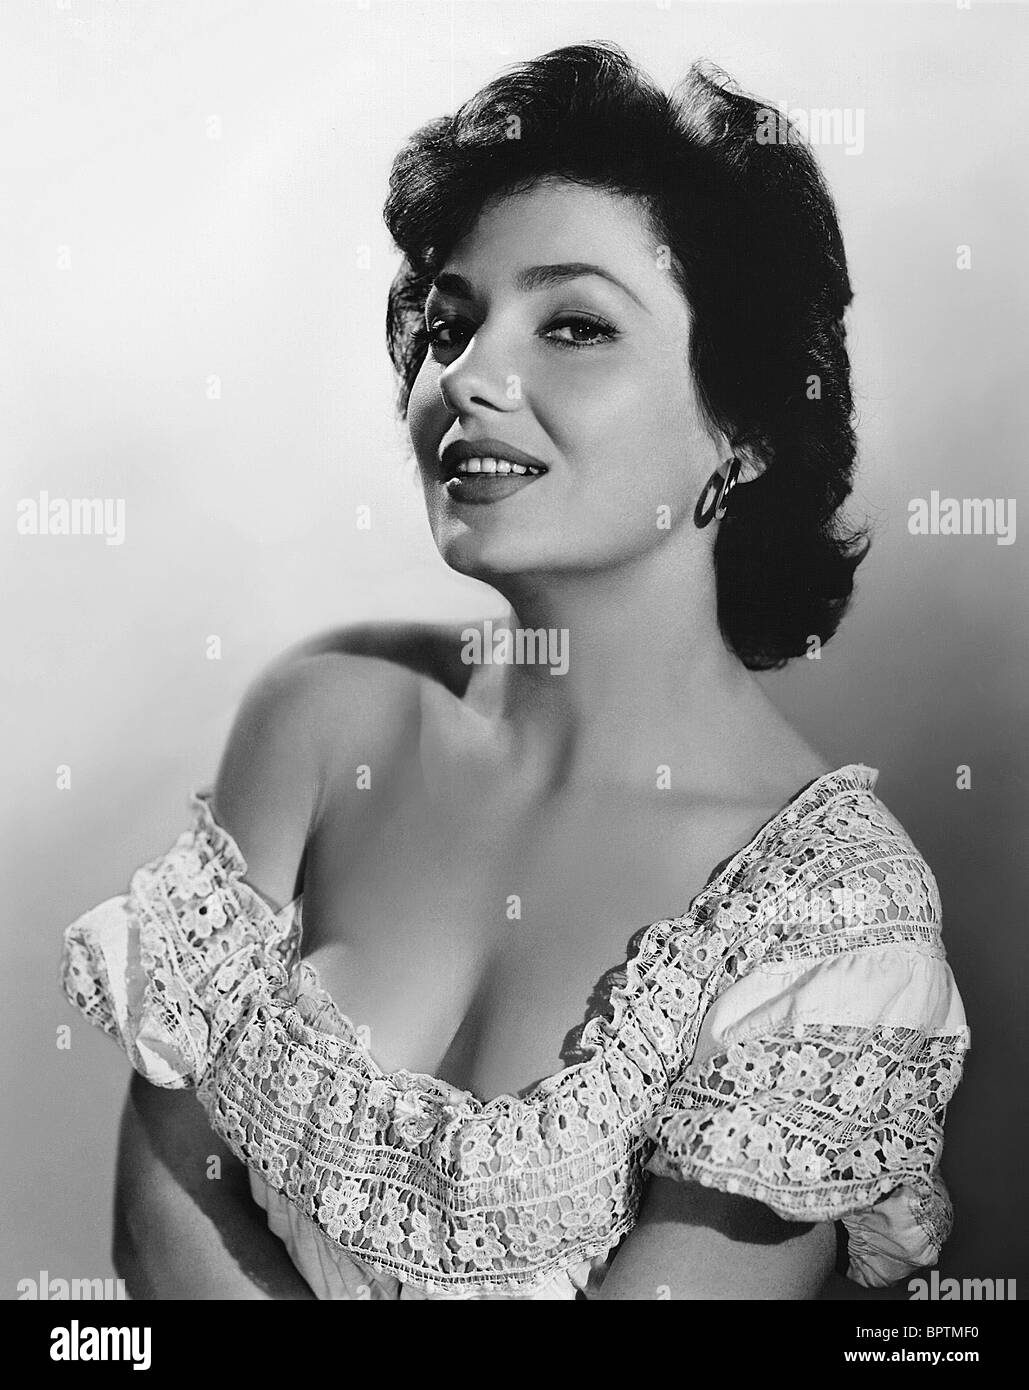 Valerie French (actress)